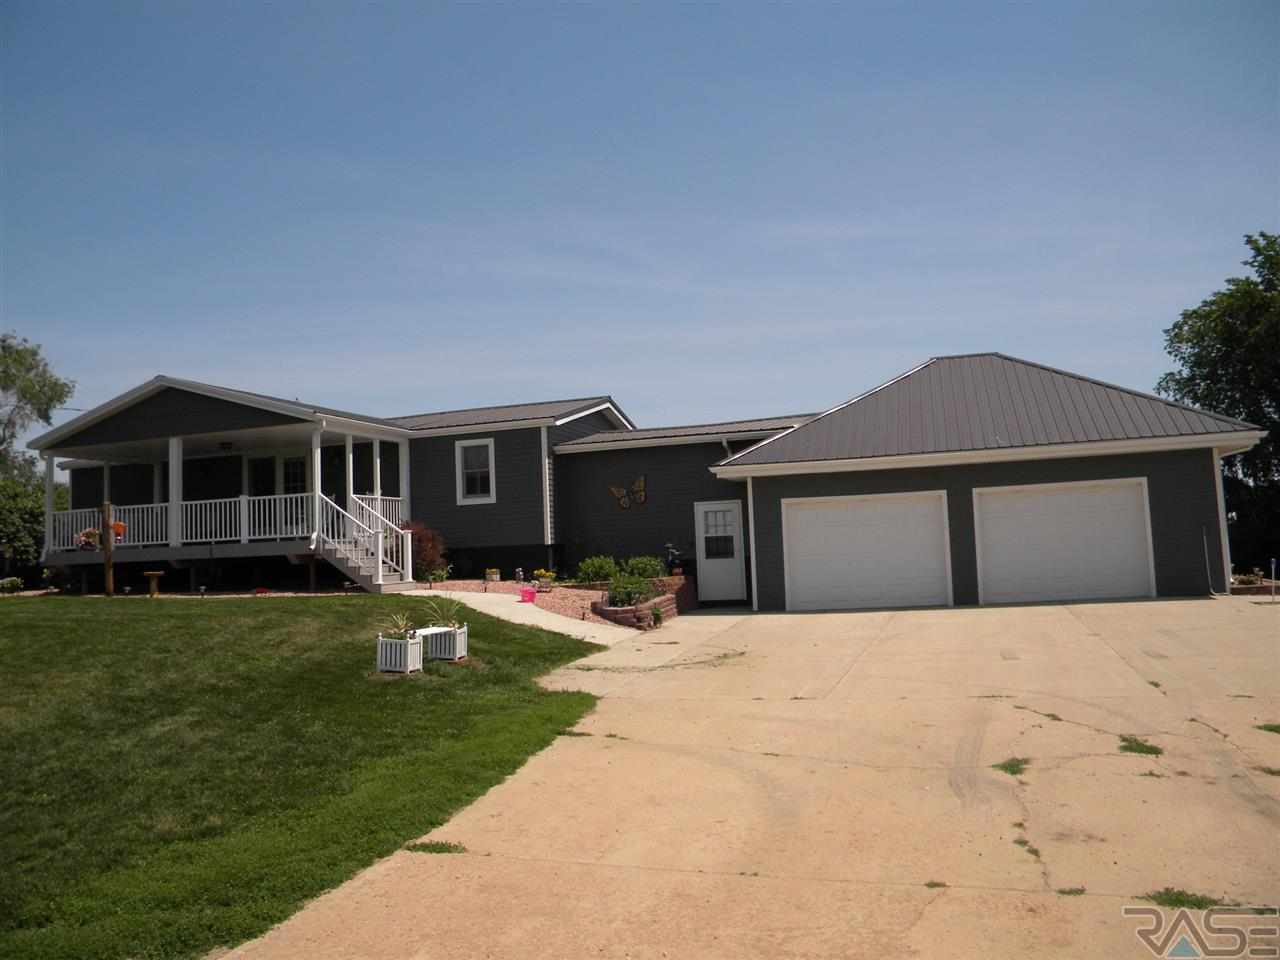 23112 452nd Ave, Madison, SD 57042